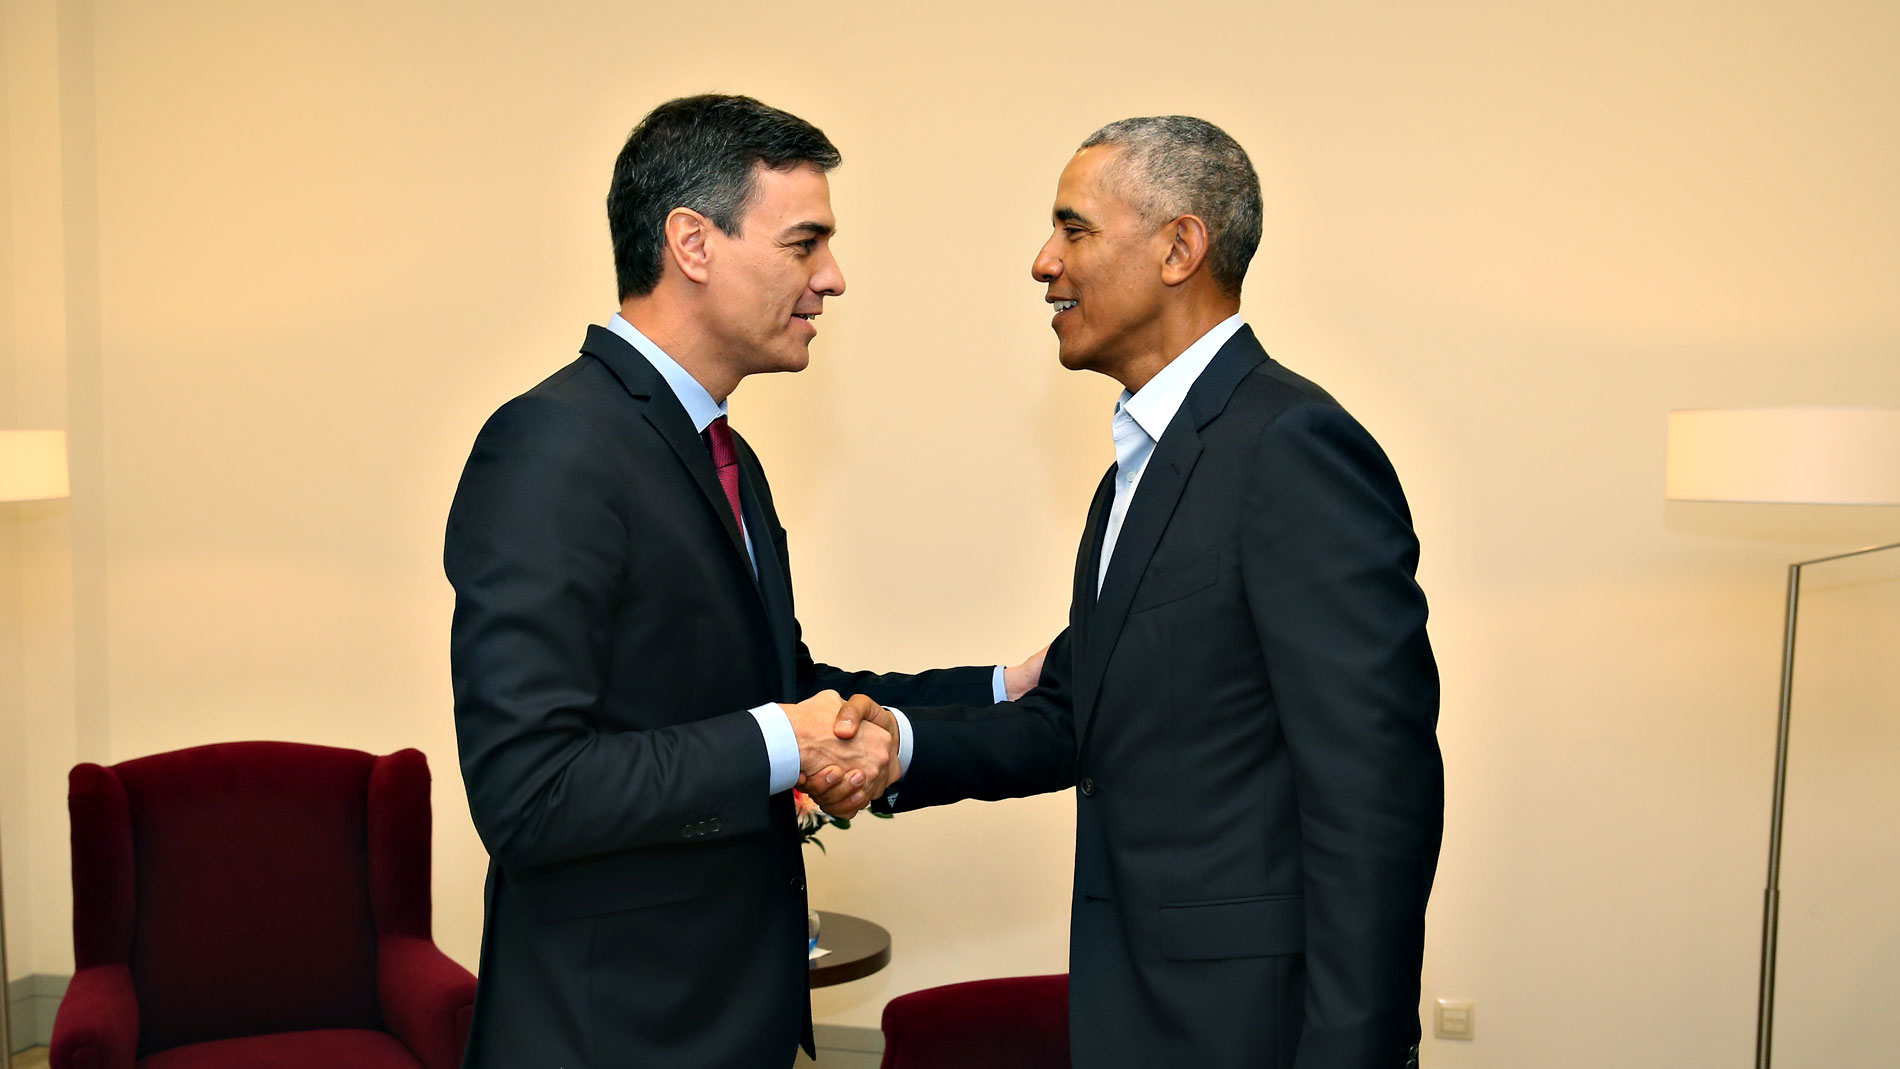 ¿Cuánto mide Barack Obama? - Estatura y peso - Real height and weight 4656099